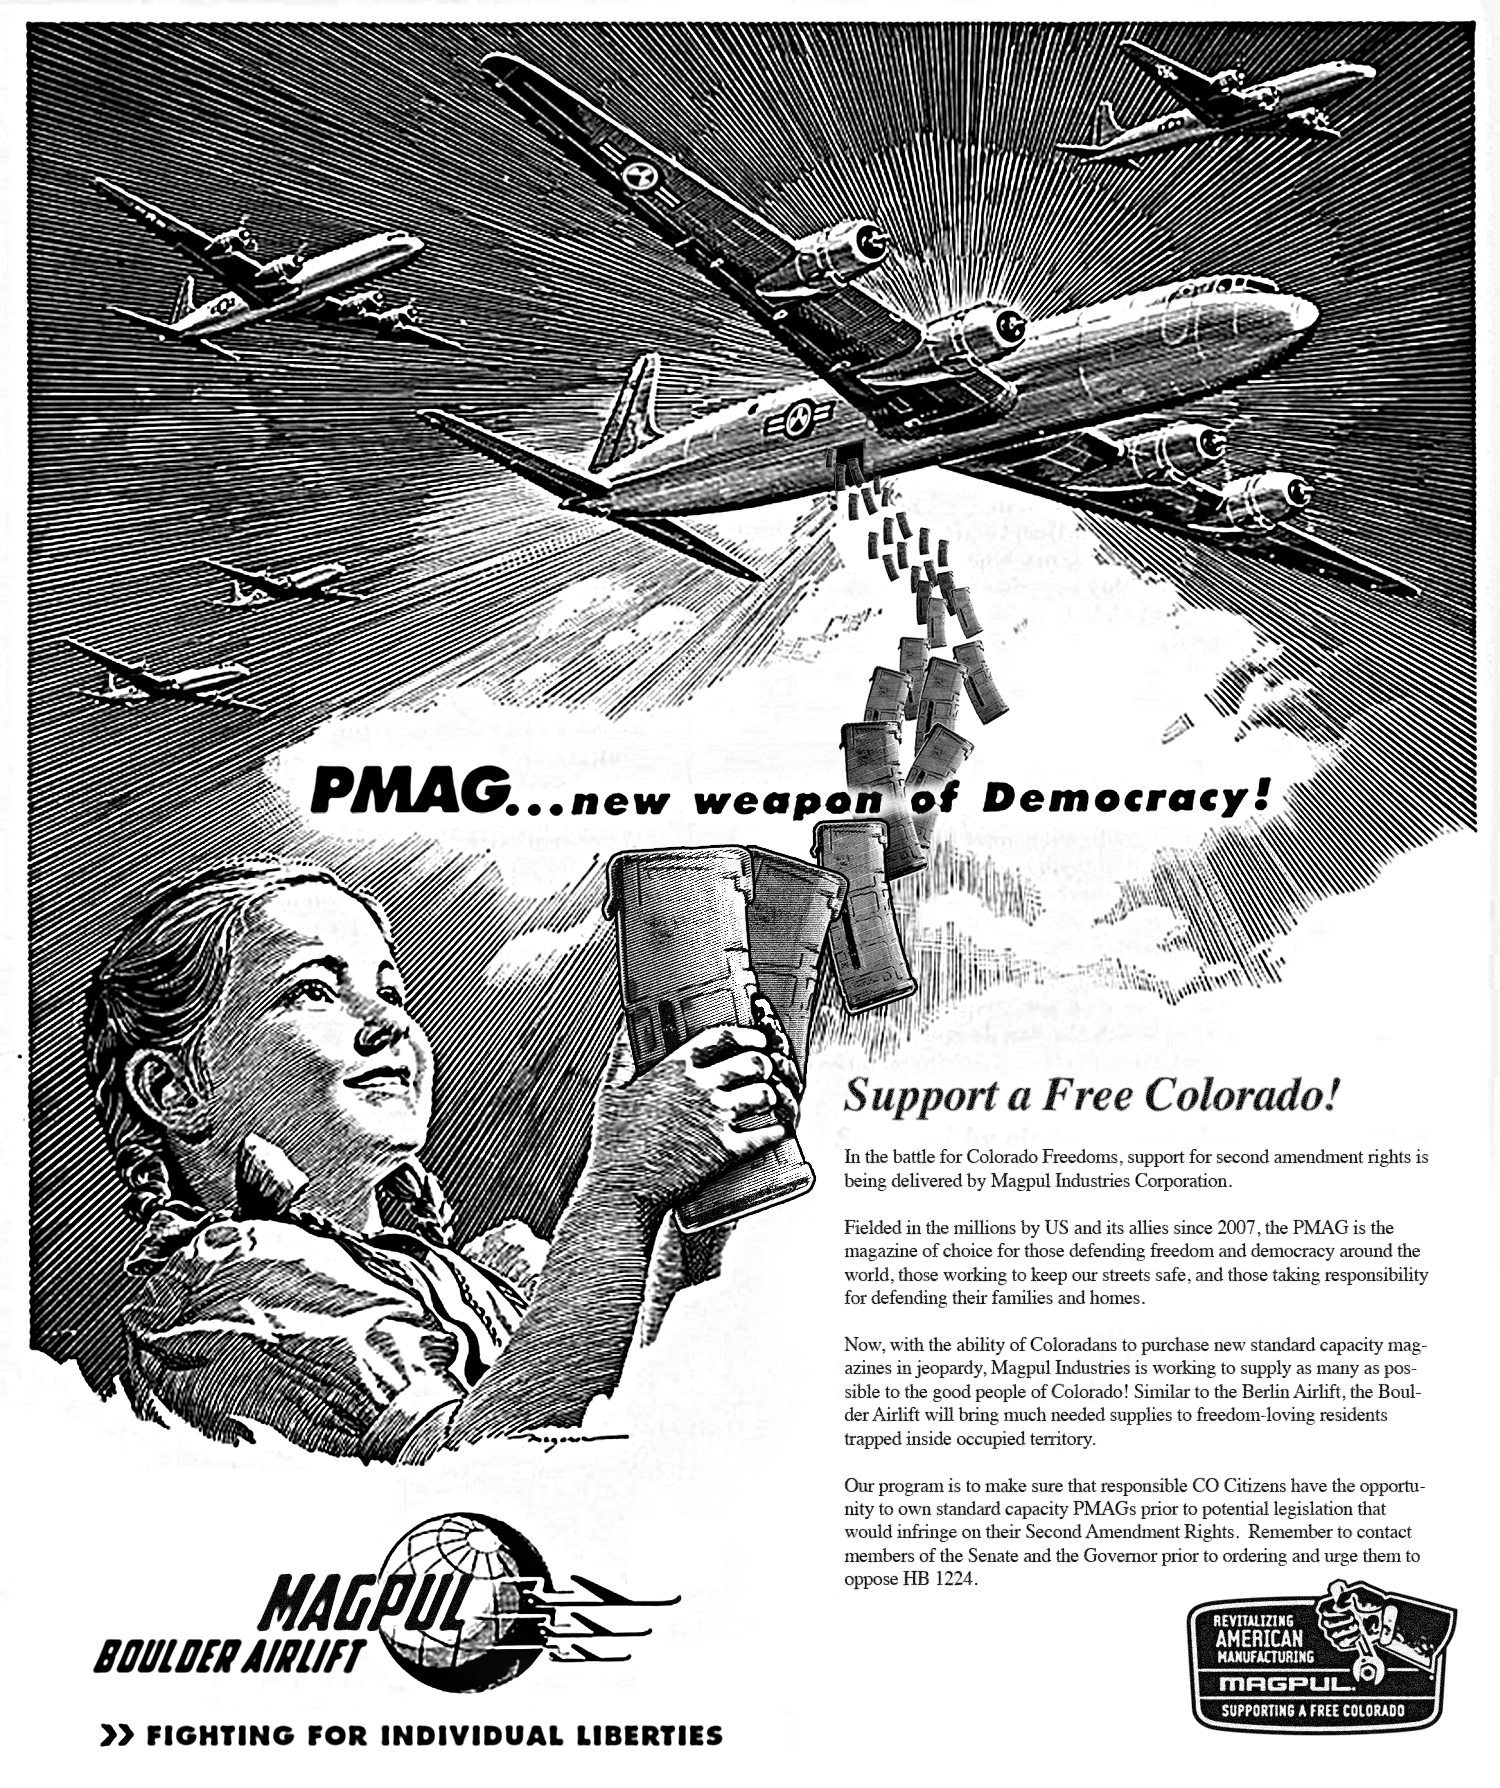 MagPul PMAGs Falling from the Sky: MagPul Boulder Airlift Operation Delivering Freedom (through PMAG 30-Round Magazines) to Coloradans!